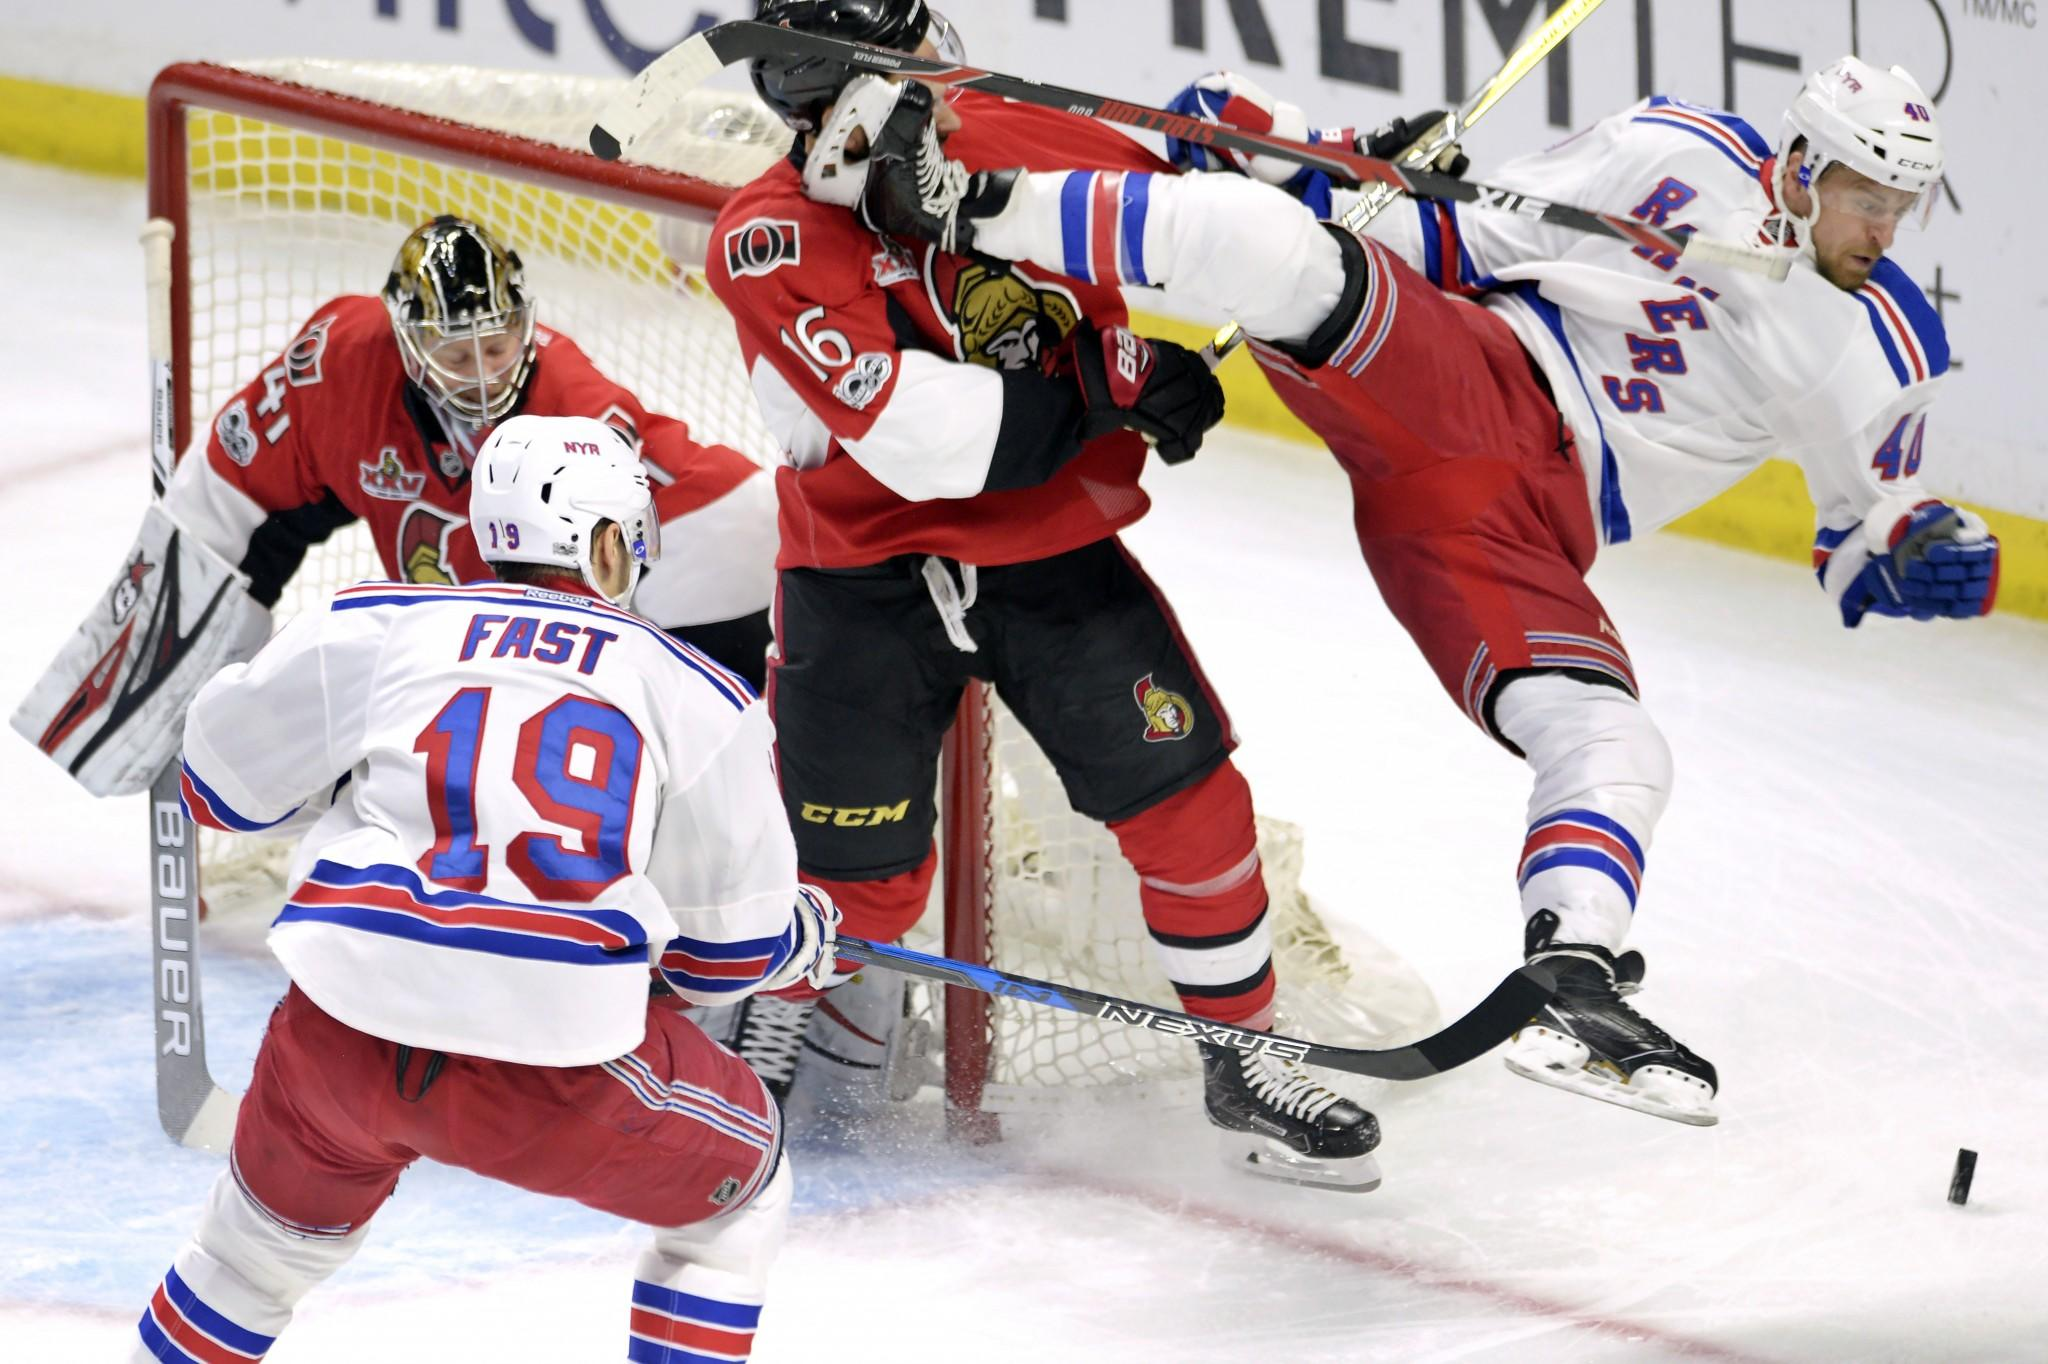 <p>Ottawa Senators left wing Clarke MacArthur (16) hits New York Rangers right wing Michael Grabner, right, as Senators goalie Craig Anderson (41) and Rangers right wing Jesper Fast (19) looks on during the first period in Game 5 in the second-round of the Stanley Cup playoffs in Ottawa on May 6, 2017. (Adrian Wyld/The Canadian Press/AP) </p>